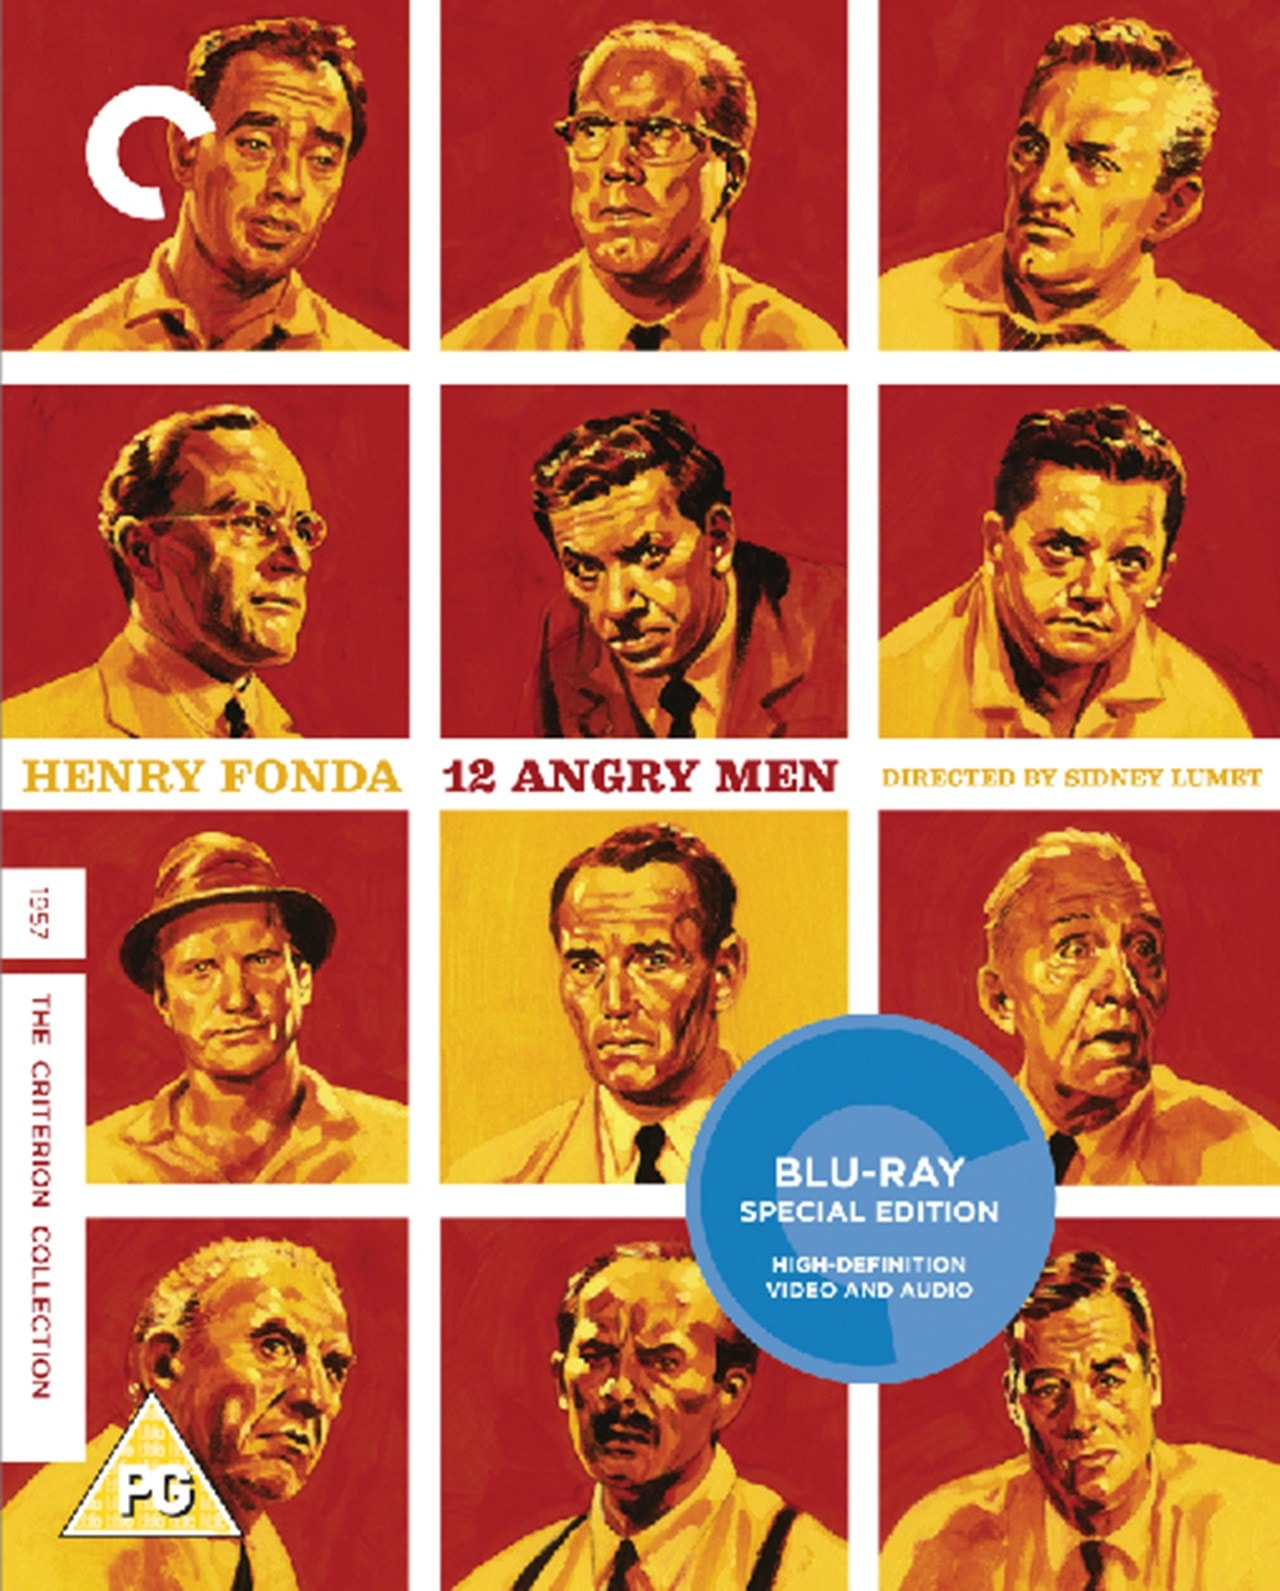 12 Angry Men - The Criterion Collection - 1